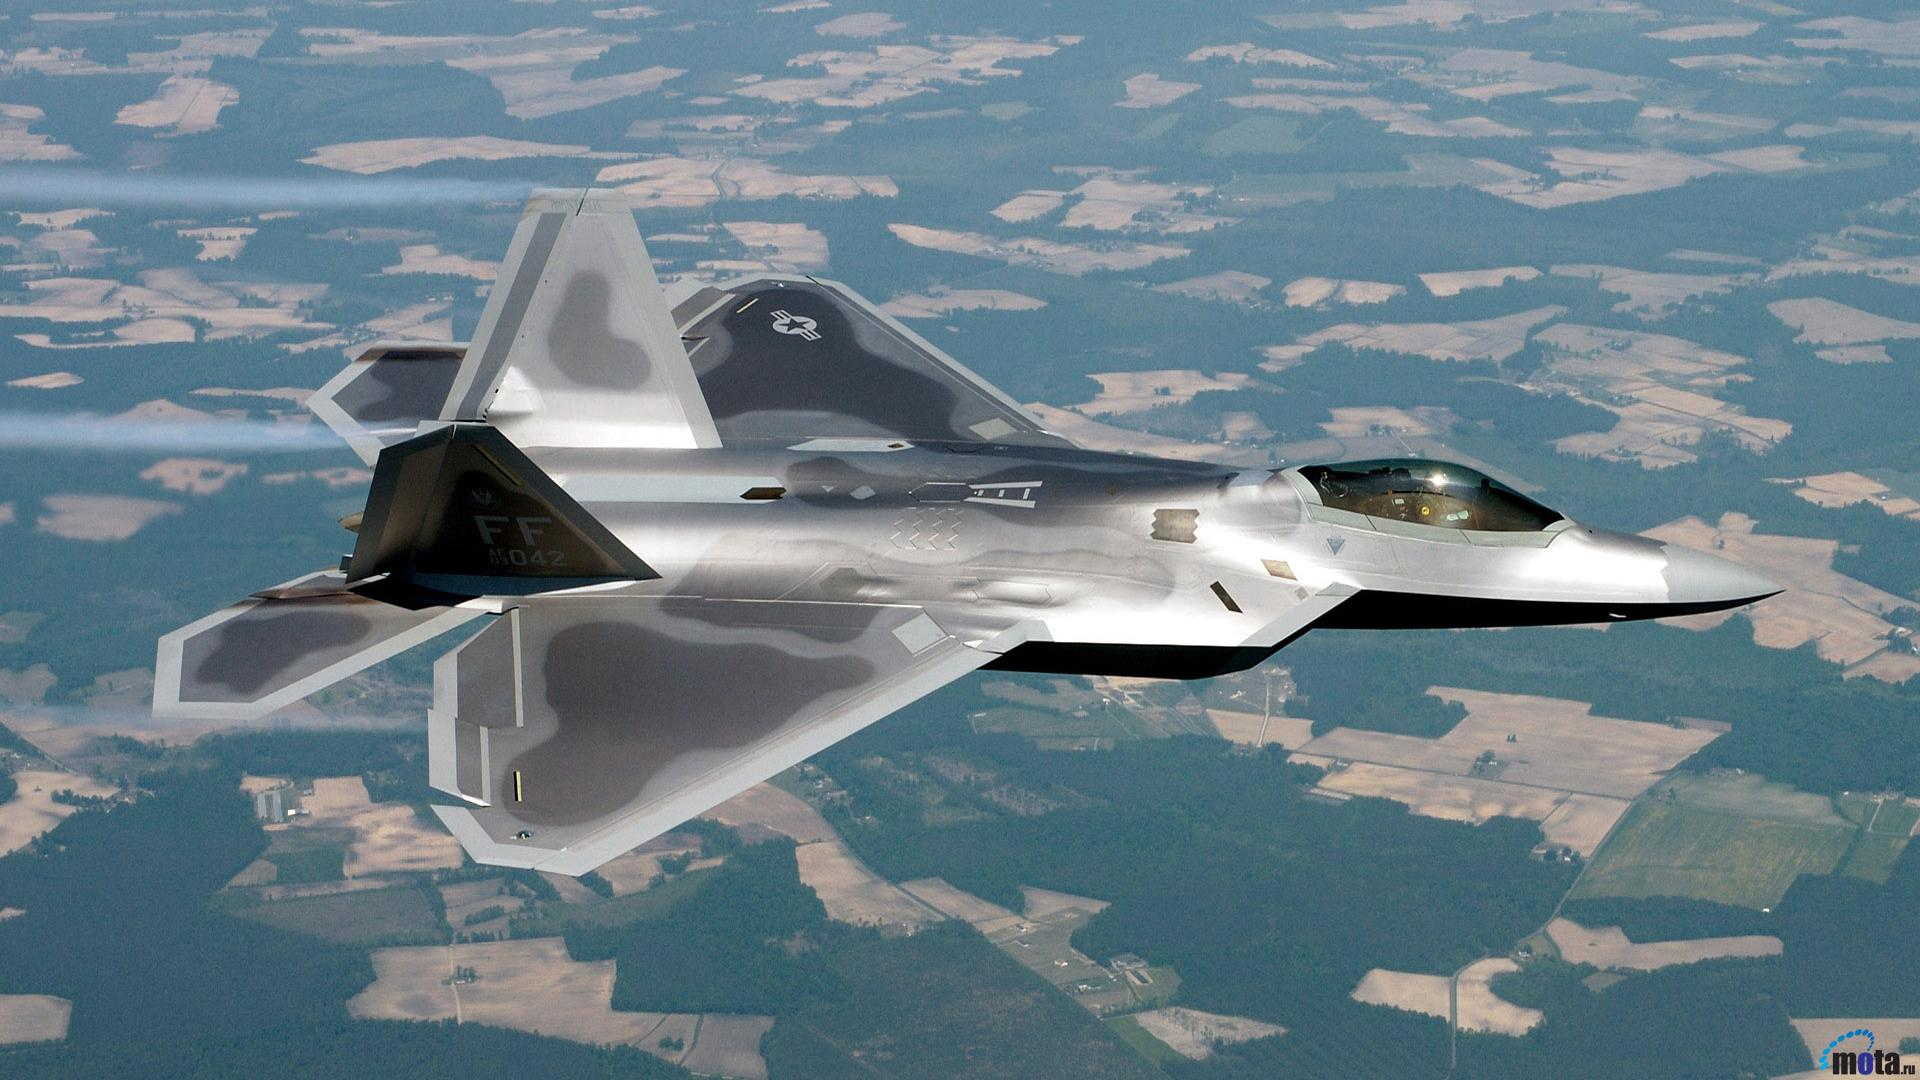 Wallpaper Lockheed MartinBoeing F 22 Raptor 1920 x 1080 HDTV 1080p 1920x1080